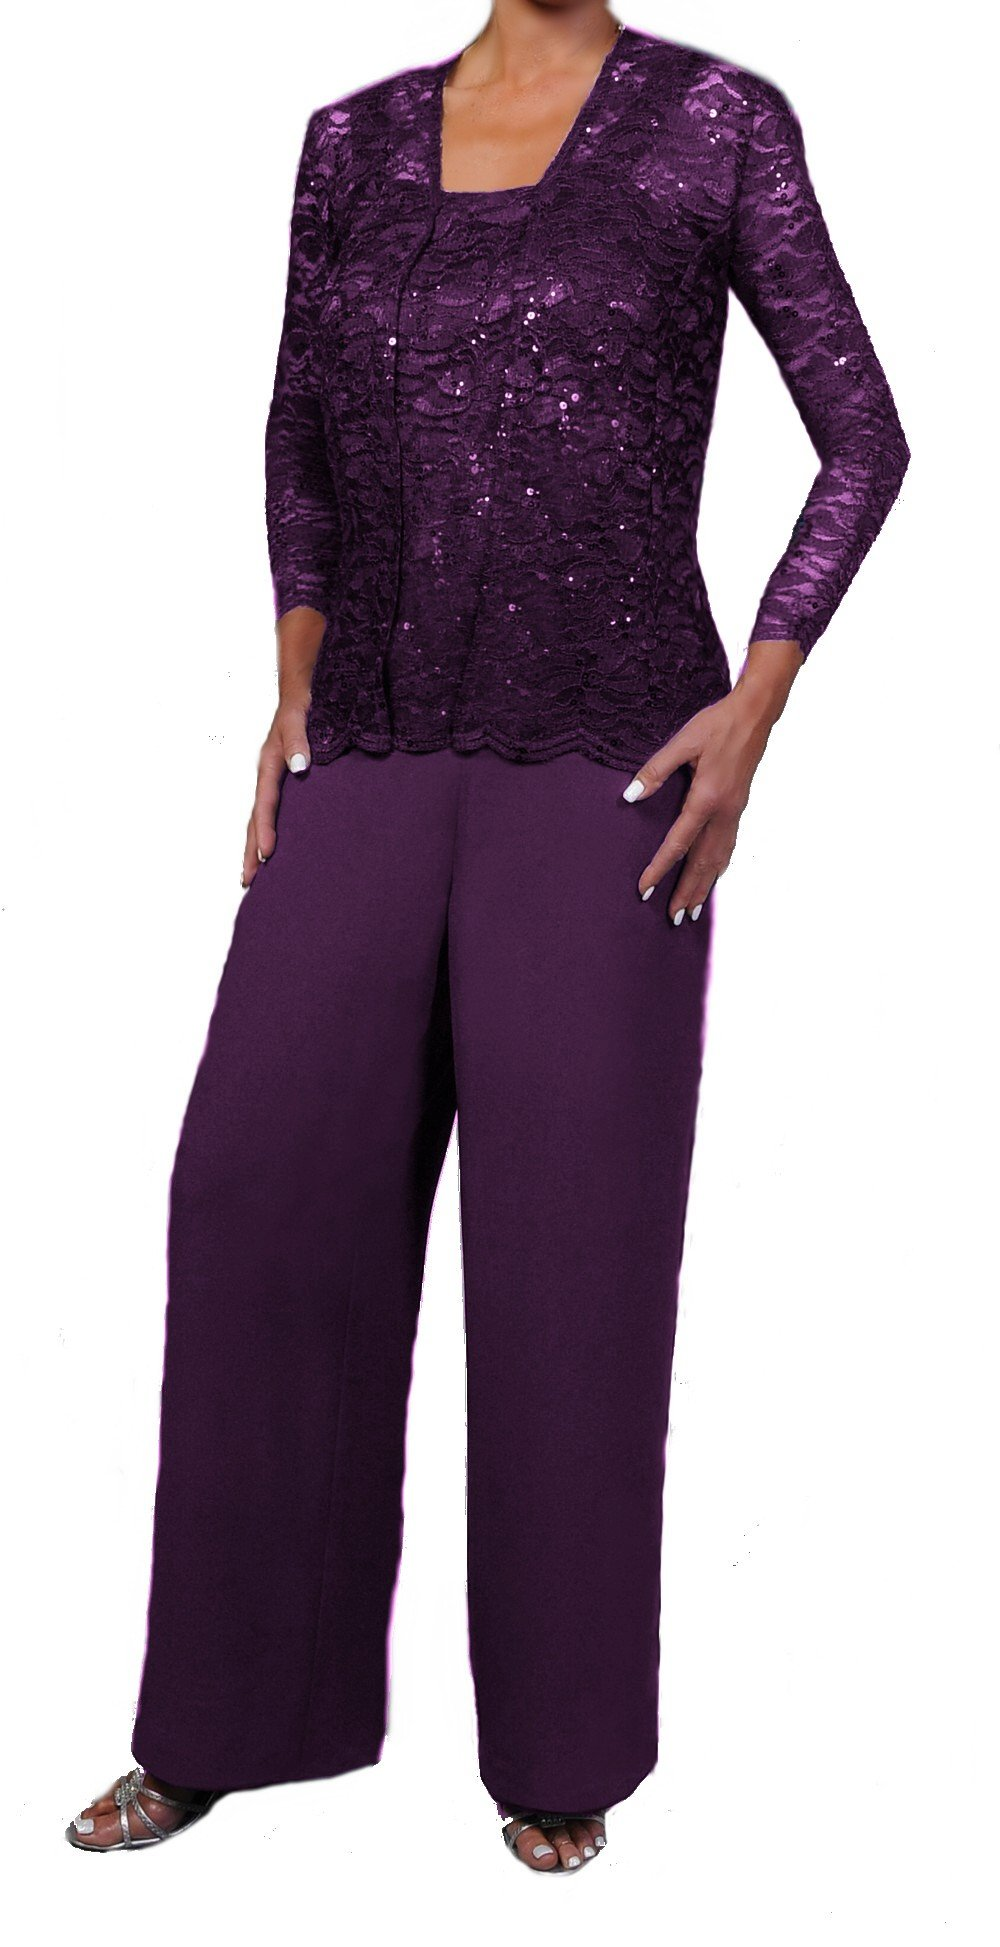 Love My Seamless Elegant Mother Of The Bride Formal 3 Piece Pant Suit Lightly Beaded Lace (3X, Plum)